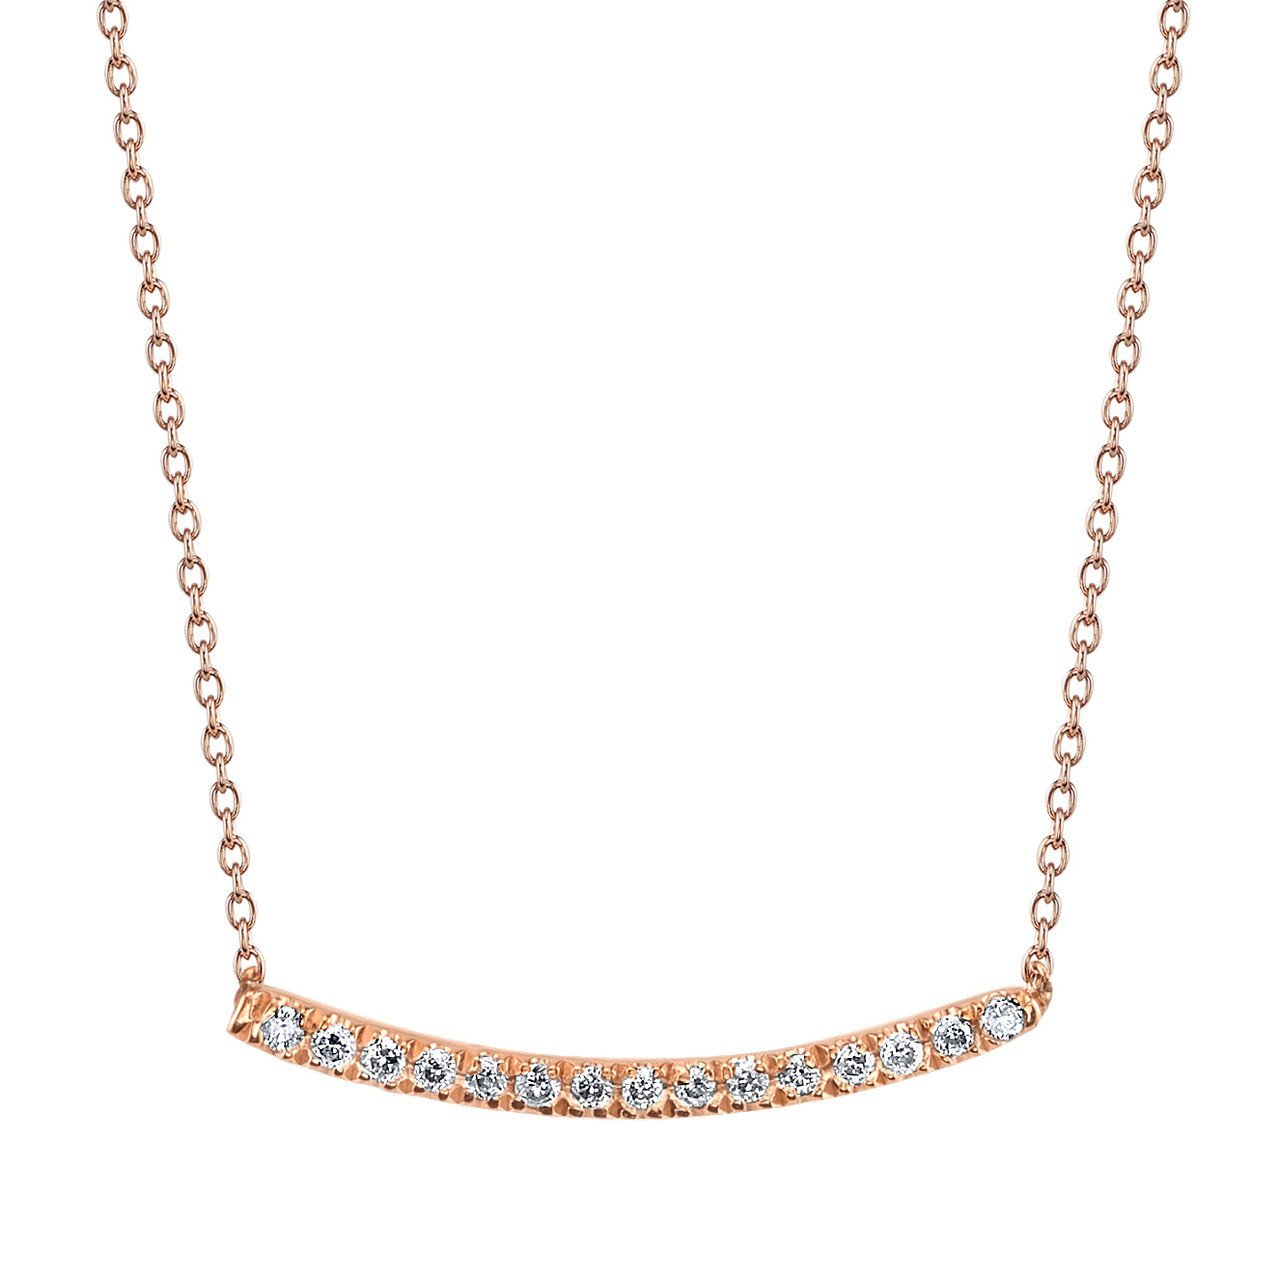 Gabriela Artigas Axis Necklace with White Pavé